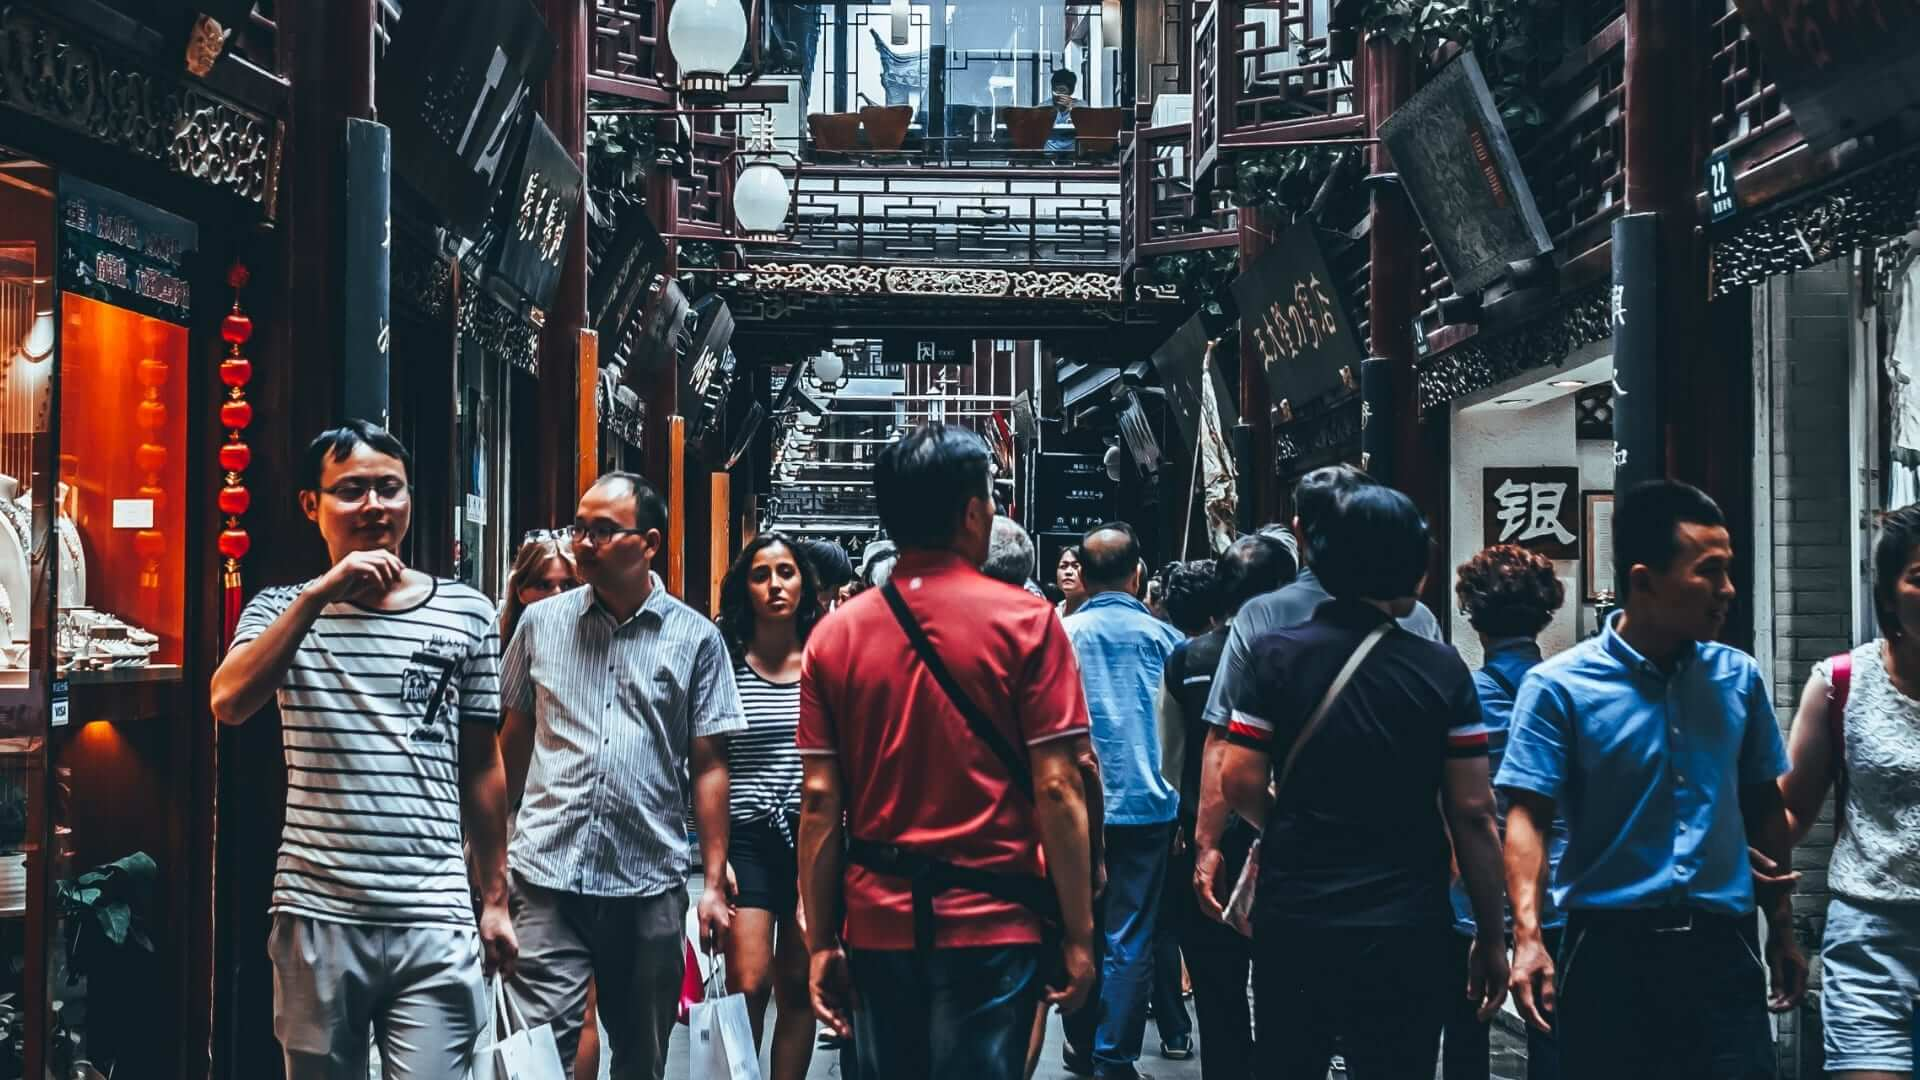 People are walking through a busy street in China.